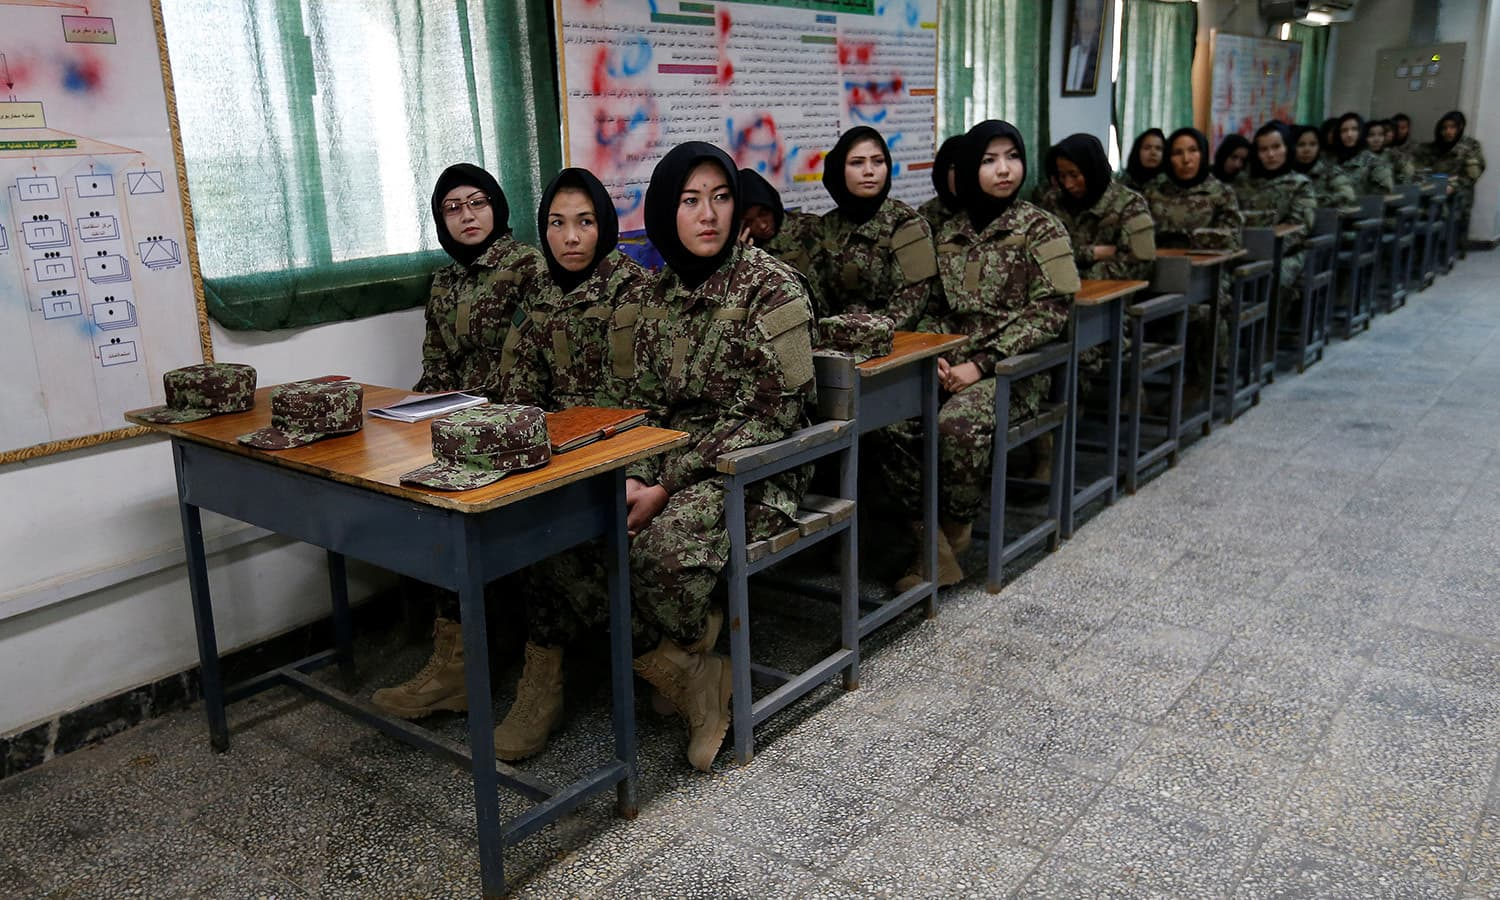 Female soldiers from the Afghan National Army (ANA) attend a lesson in a classroom at the Kabul Military Training Centre (KMTC) ─Reuters